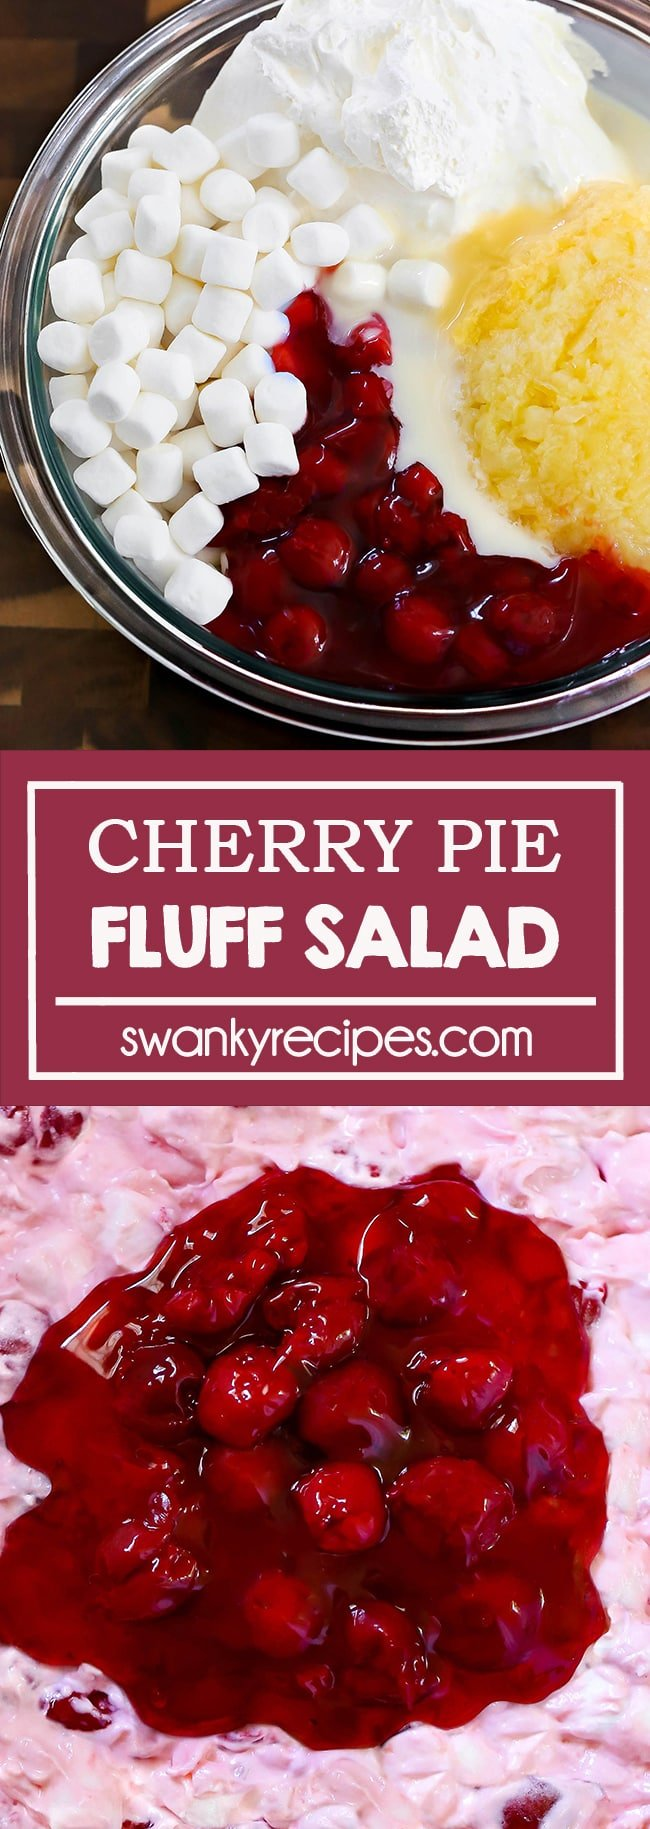 Cherry Pie Fluff Salad - A clear bowl with cherry pie filling, crushed pineapple, whipped cream, and mini marshmallows together with sweetened condensed milk. Served on a wooden serving board. Text in center reads cherry pie fluff salad in a pink boarder. Second image is close up of the ingredients mixed together with a pink hue and red cherry pie filling in the center.